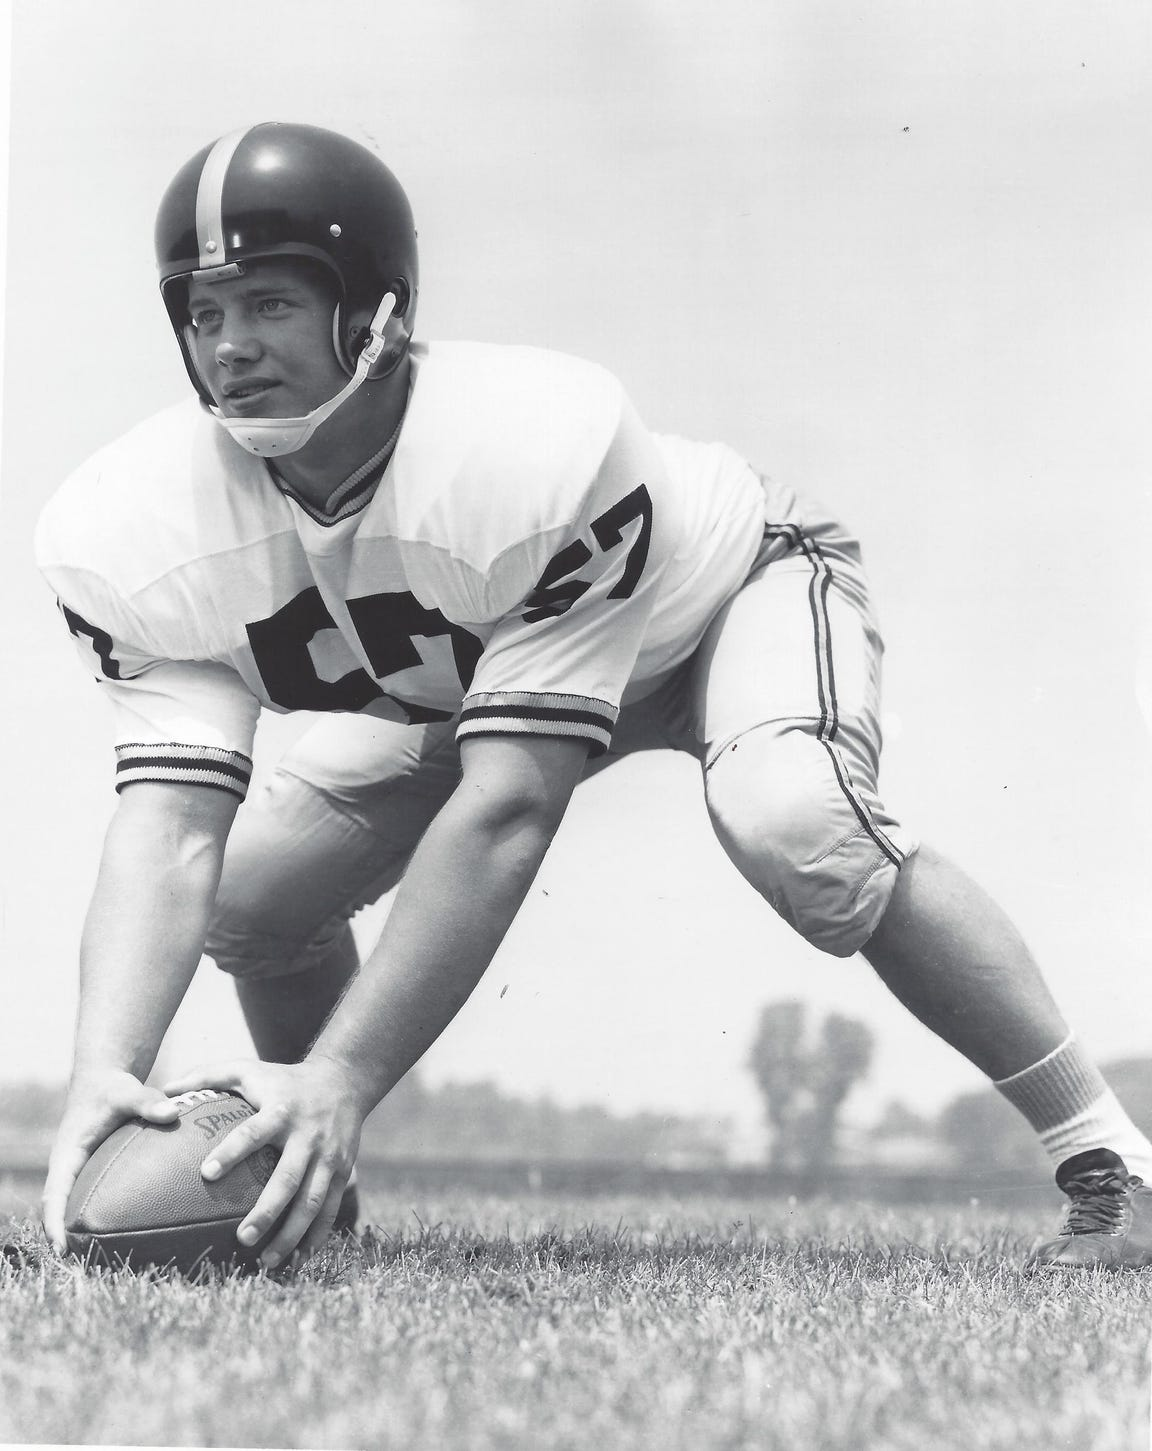 Ed Flanagan went on to become a four-time Pro Bowl center for the Detroit Lions after his career at Purdue.